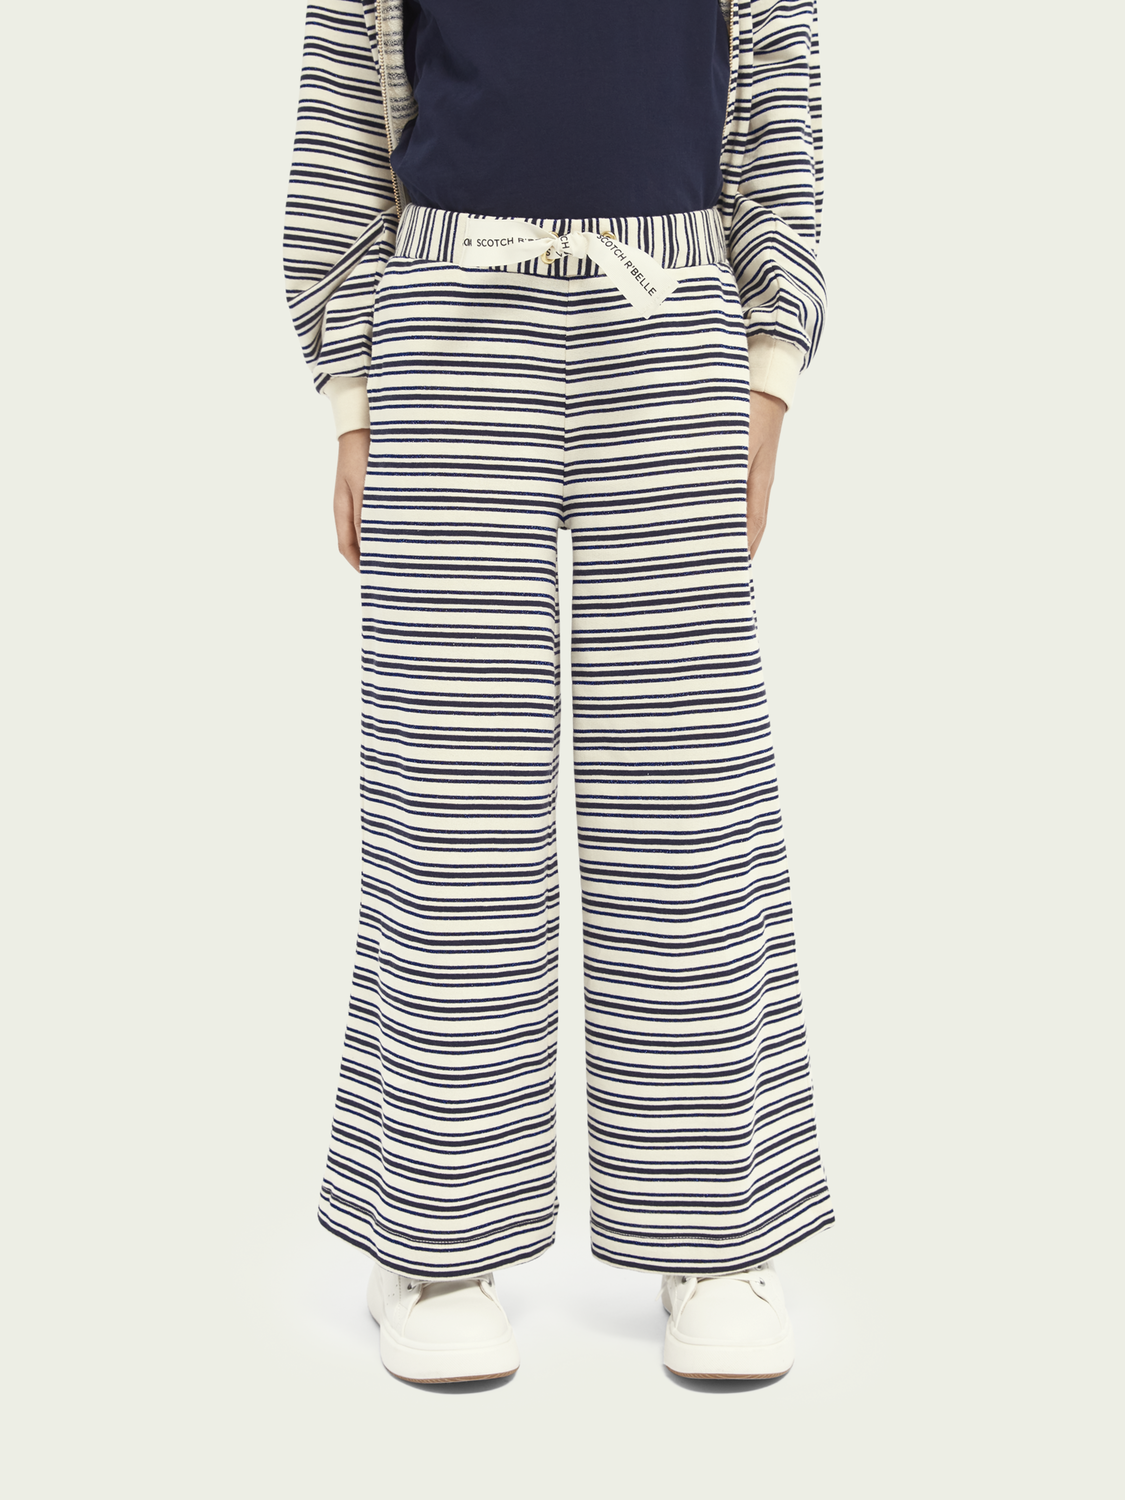 Kids Wide leg organic cotton-blend sweatpants with metallic detail